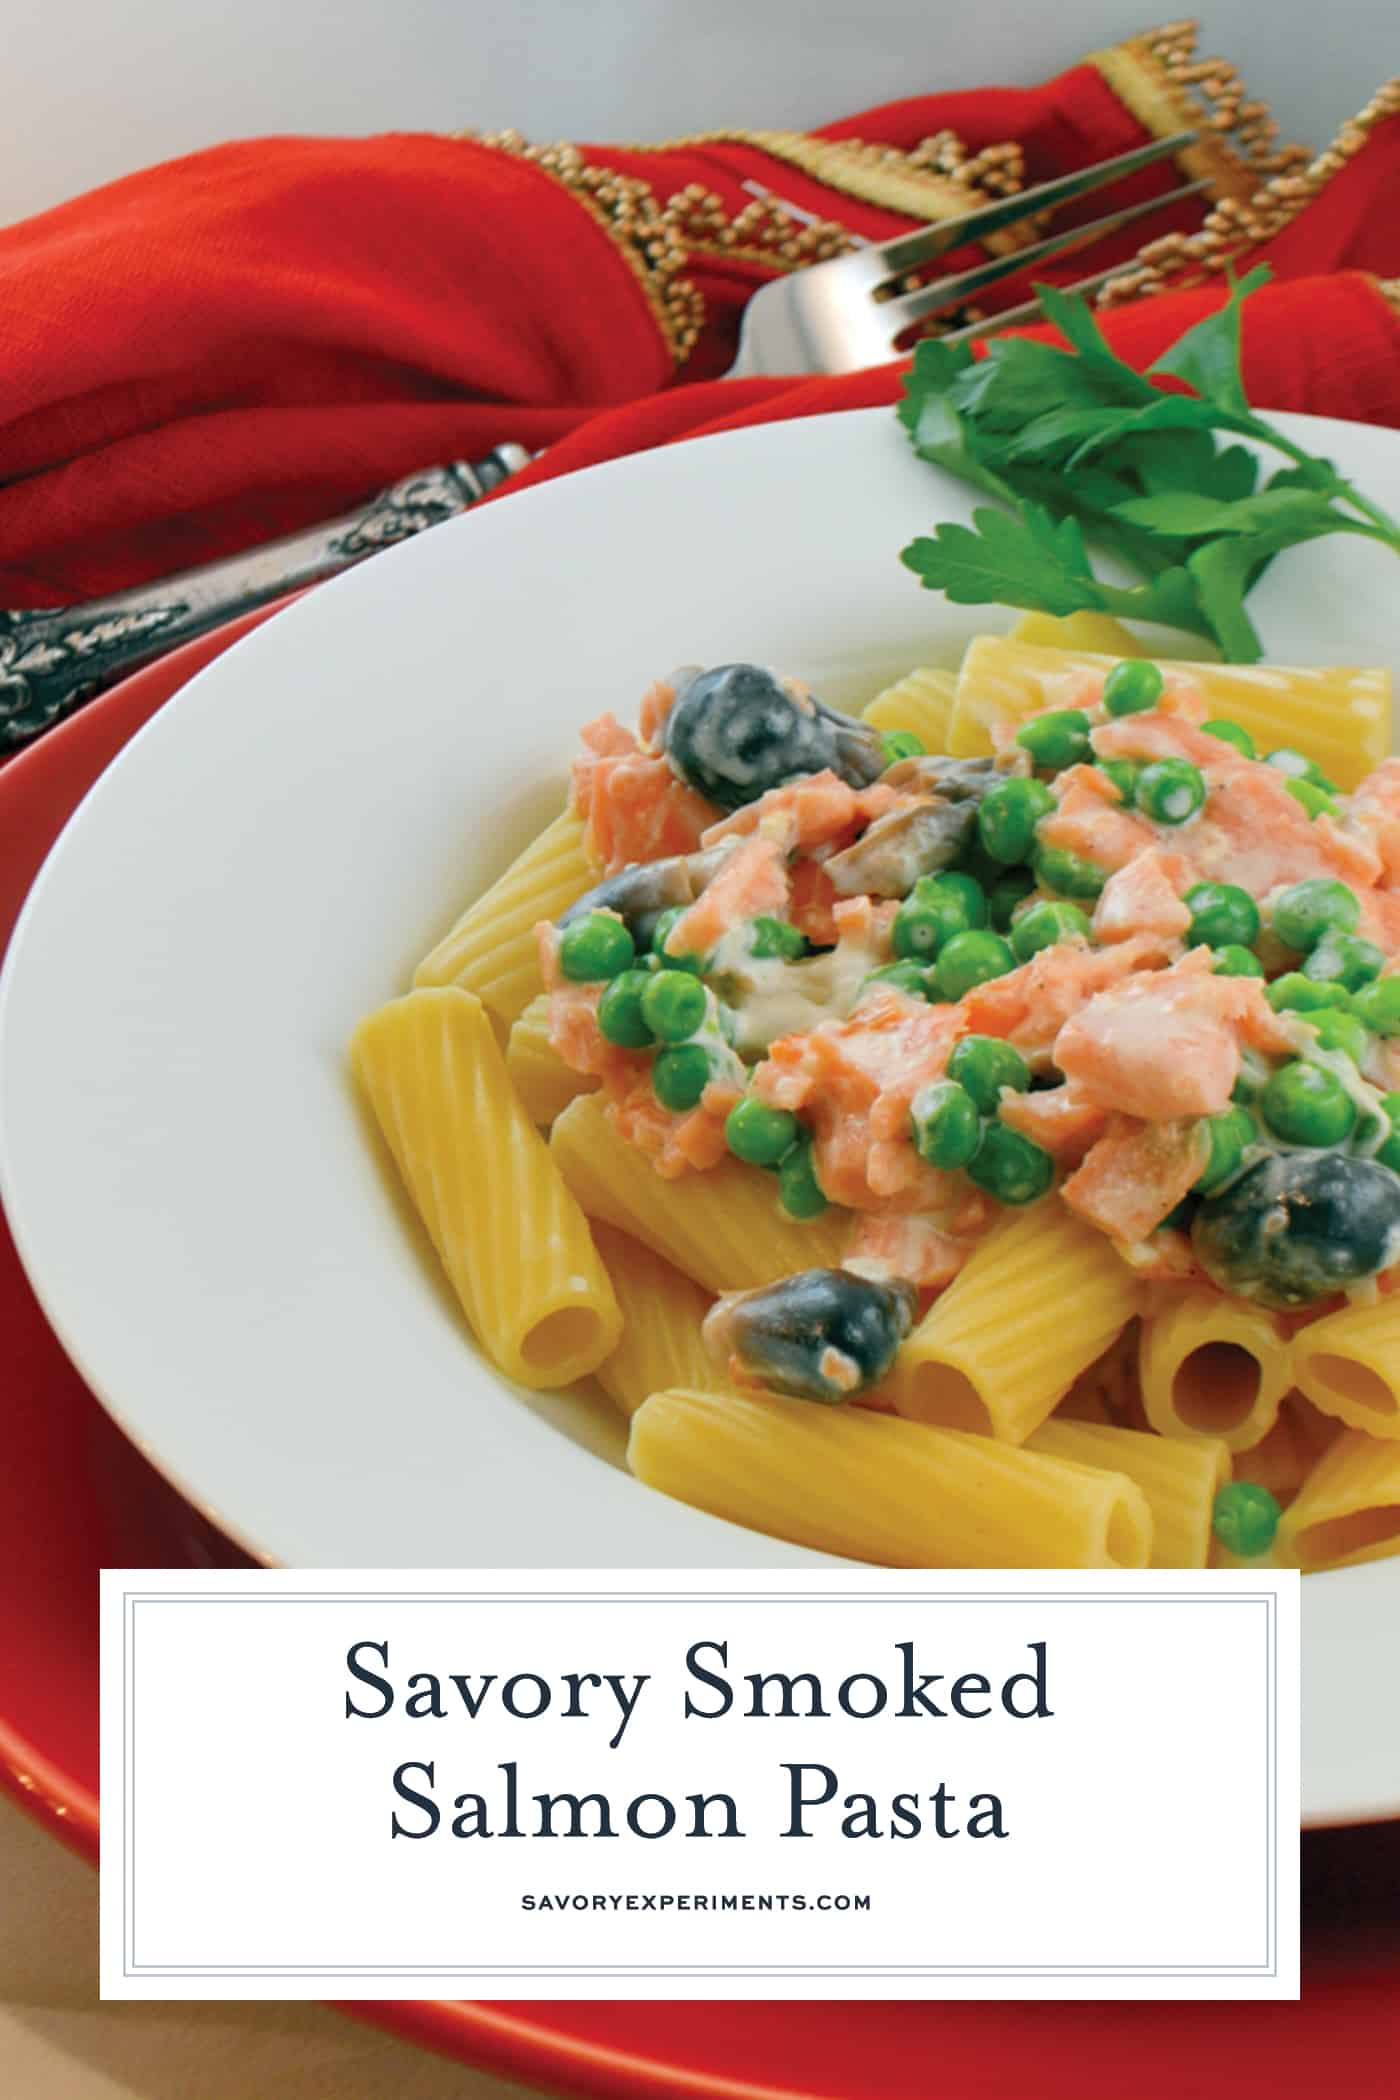 This Smoked Salmon Pasta recipe is a new way to use smoked salmon! You can prepare a delicious dinner in just 25 minutes with only a handful of ingredients. #smokedsalmonpasta #salmonpastarecipe www.savoryexperiments.com